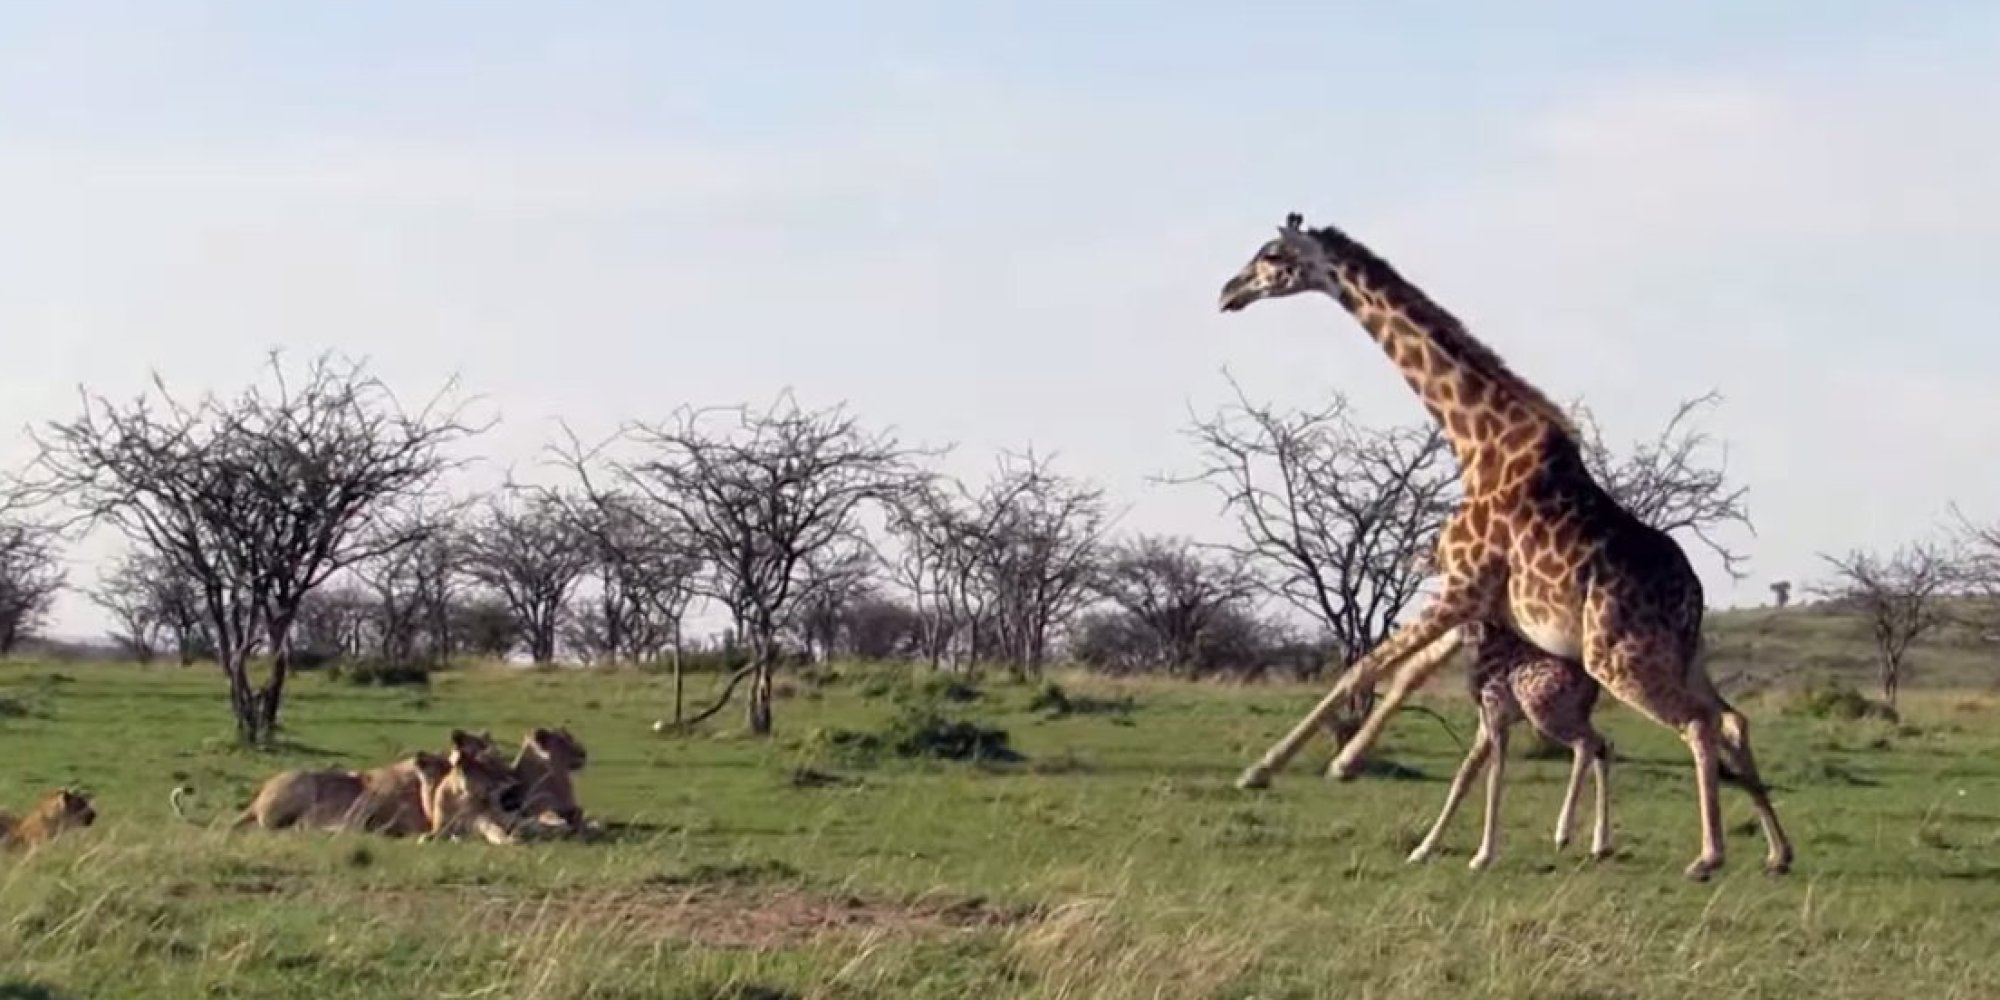 giraffe takes on lions proves nothing u0027s more fierce than a mother